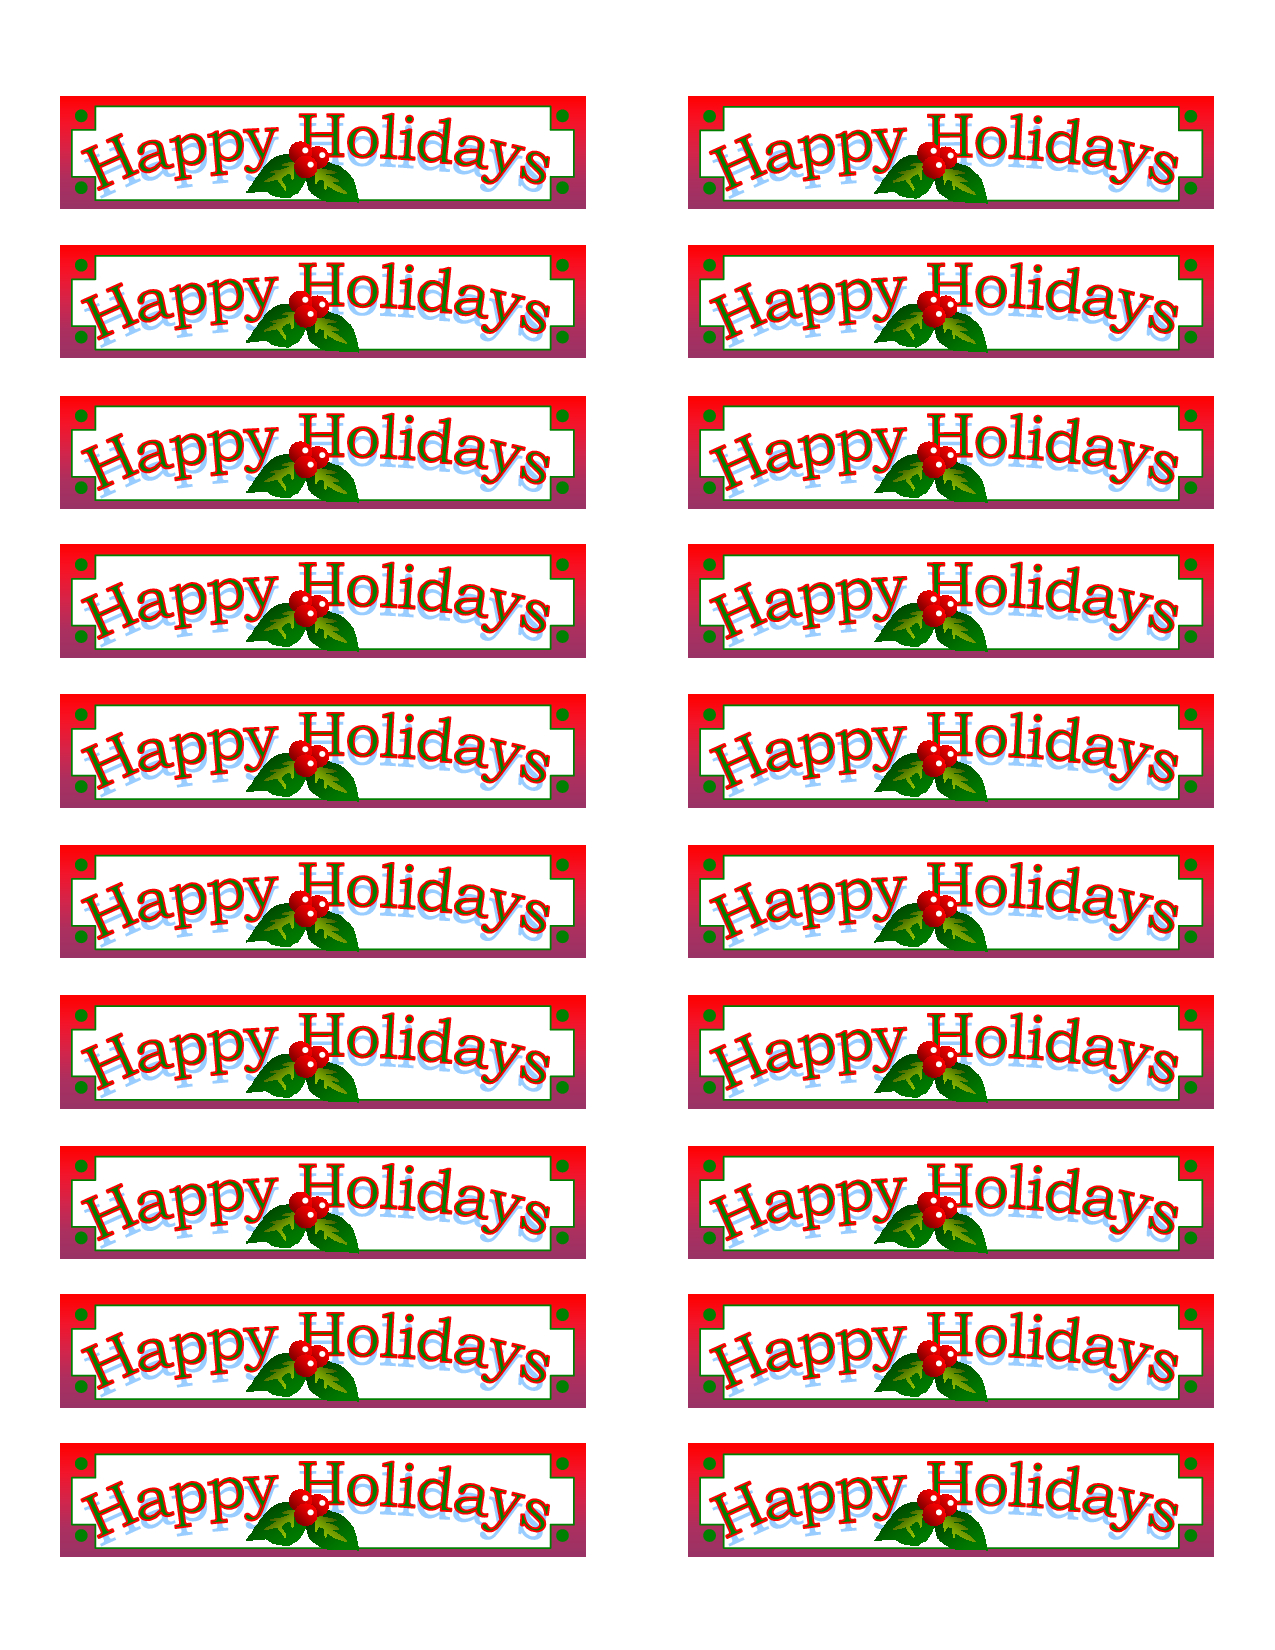 Free Christmas Label Templates Avery 5160 – Festival Collections - Free Printable Labels Avery 5160